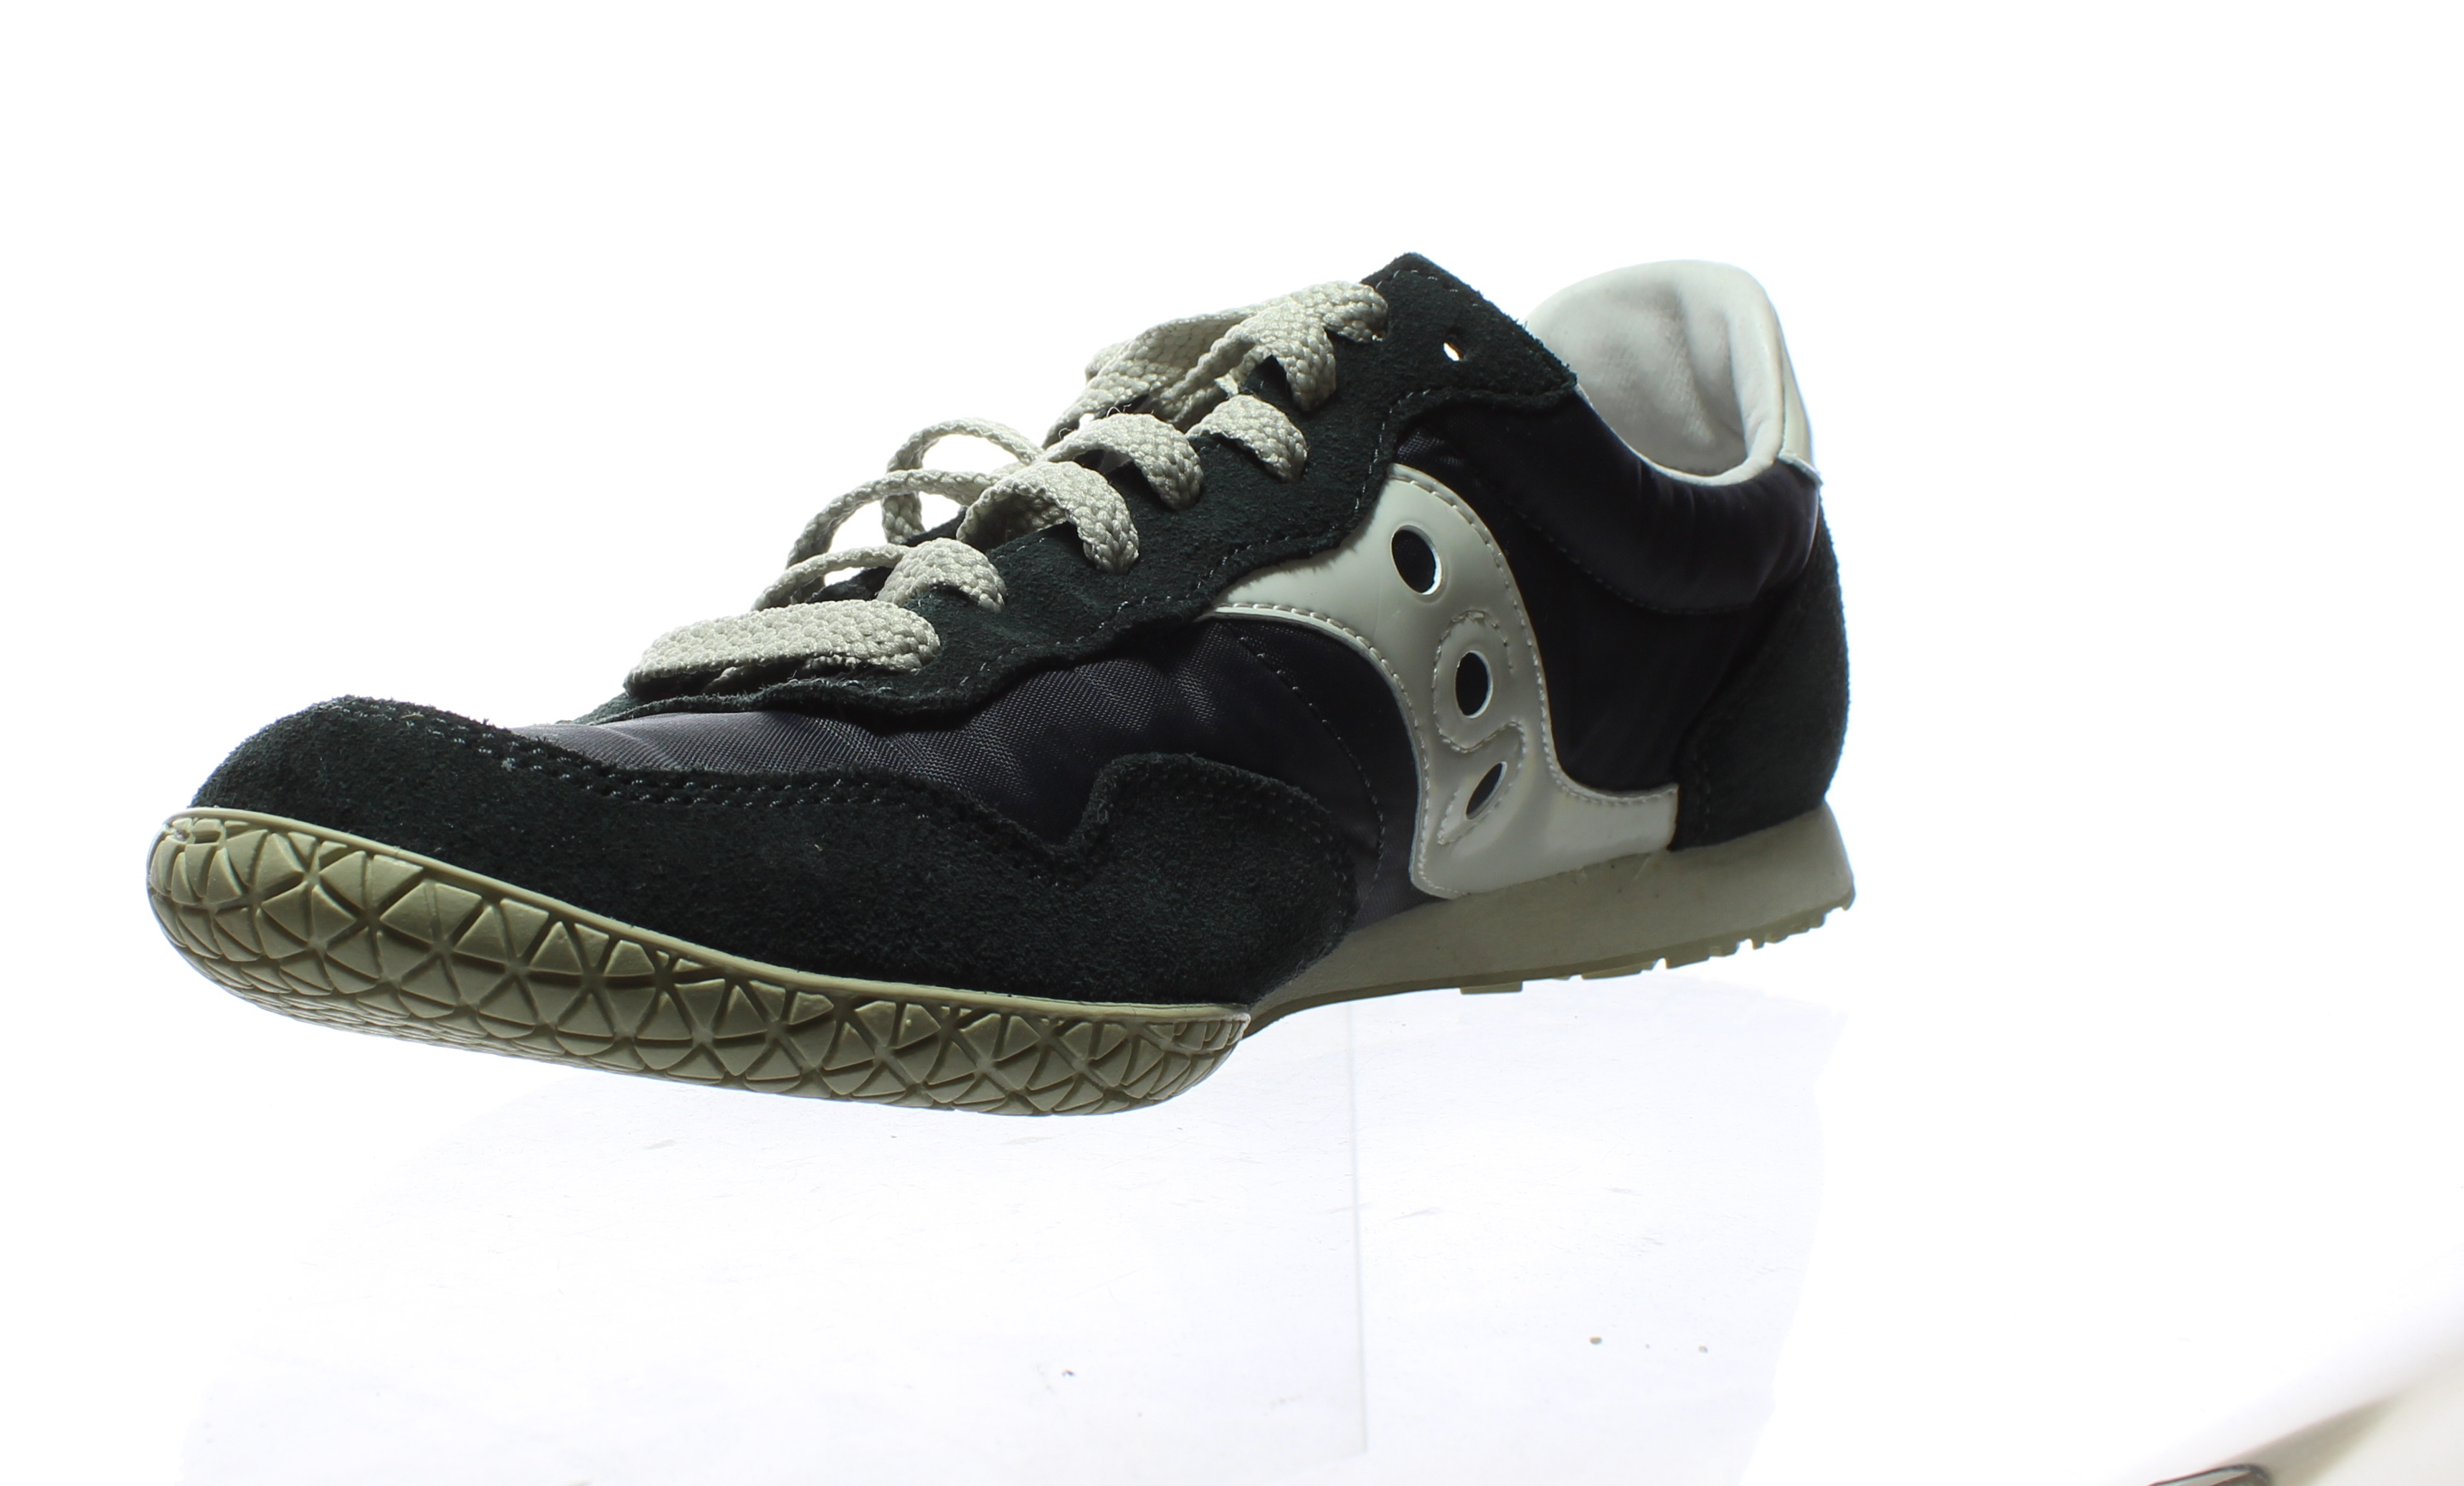 73517eead491 Saucony Mens Bullet Navy Gray Running Shoes Size 9 (210331 ...